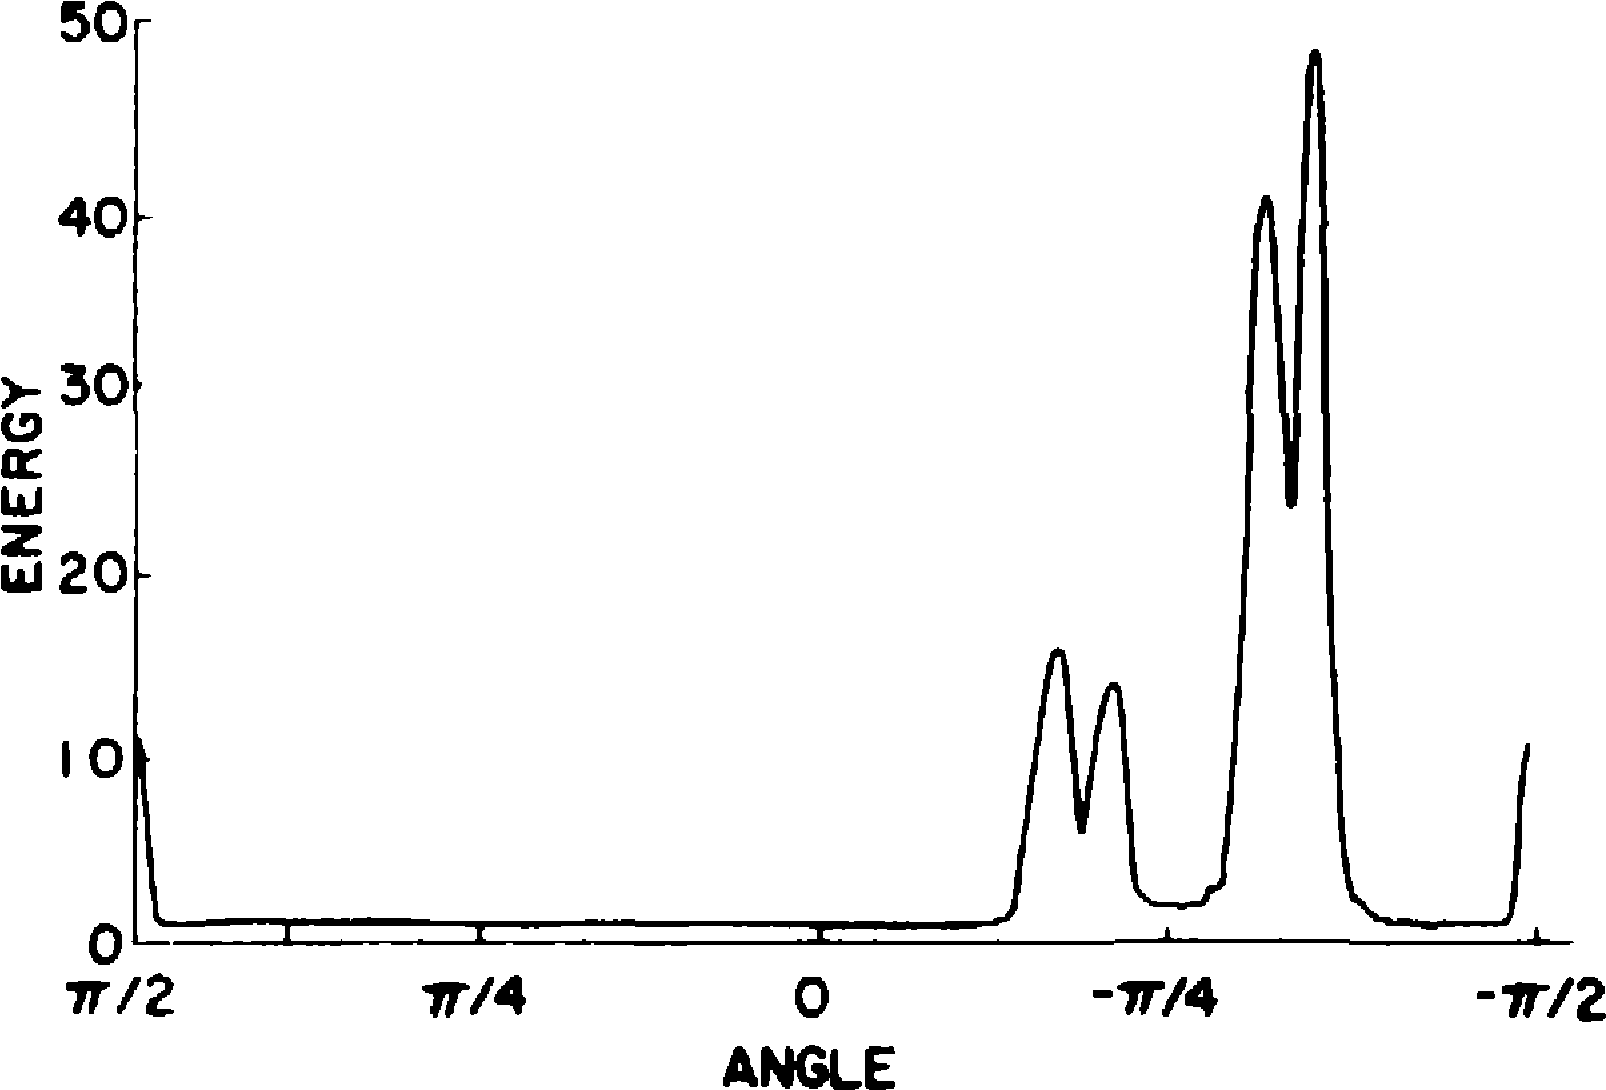 Figure 5. Graph of energy versus angle for the spectrum of Figure 3. The energy was computed by passing the spectrum of